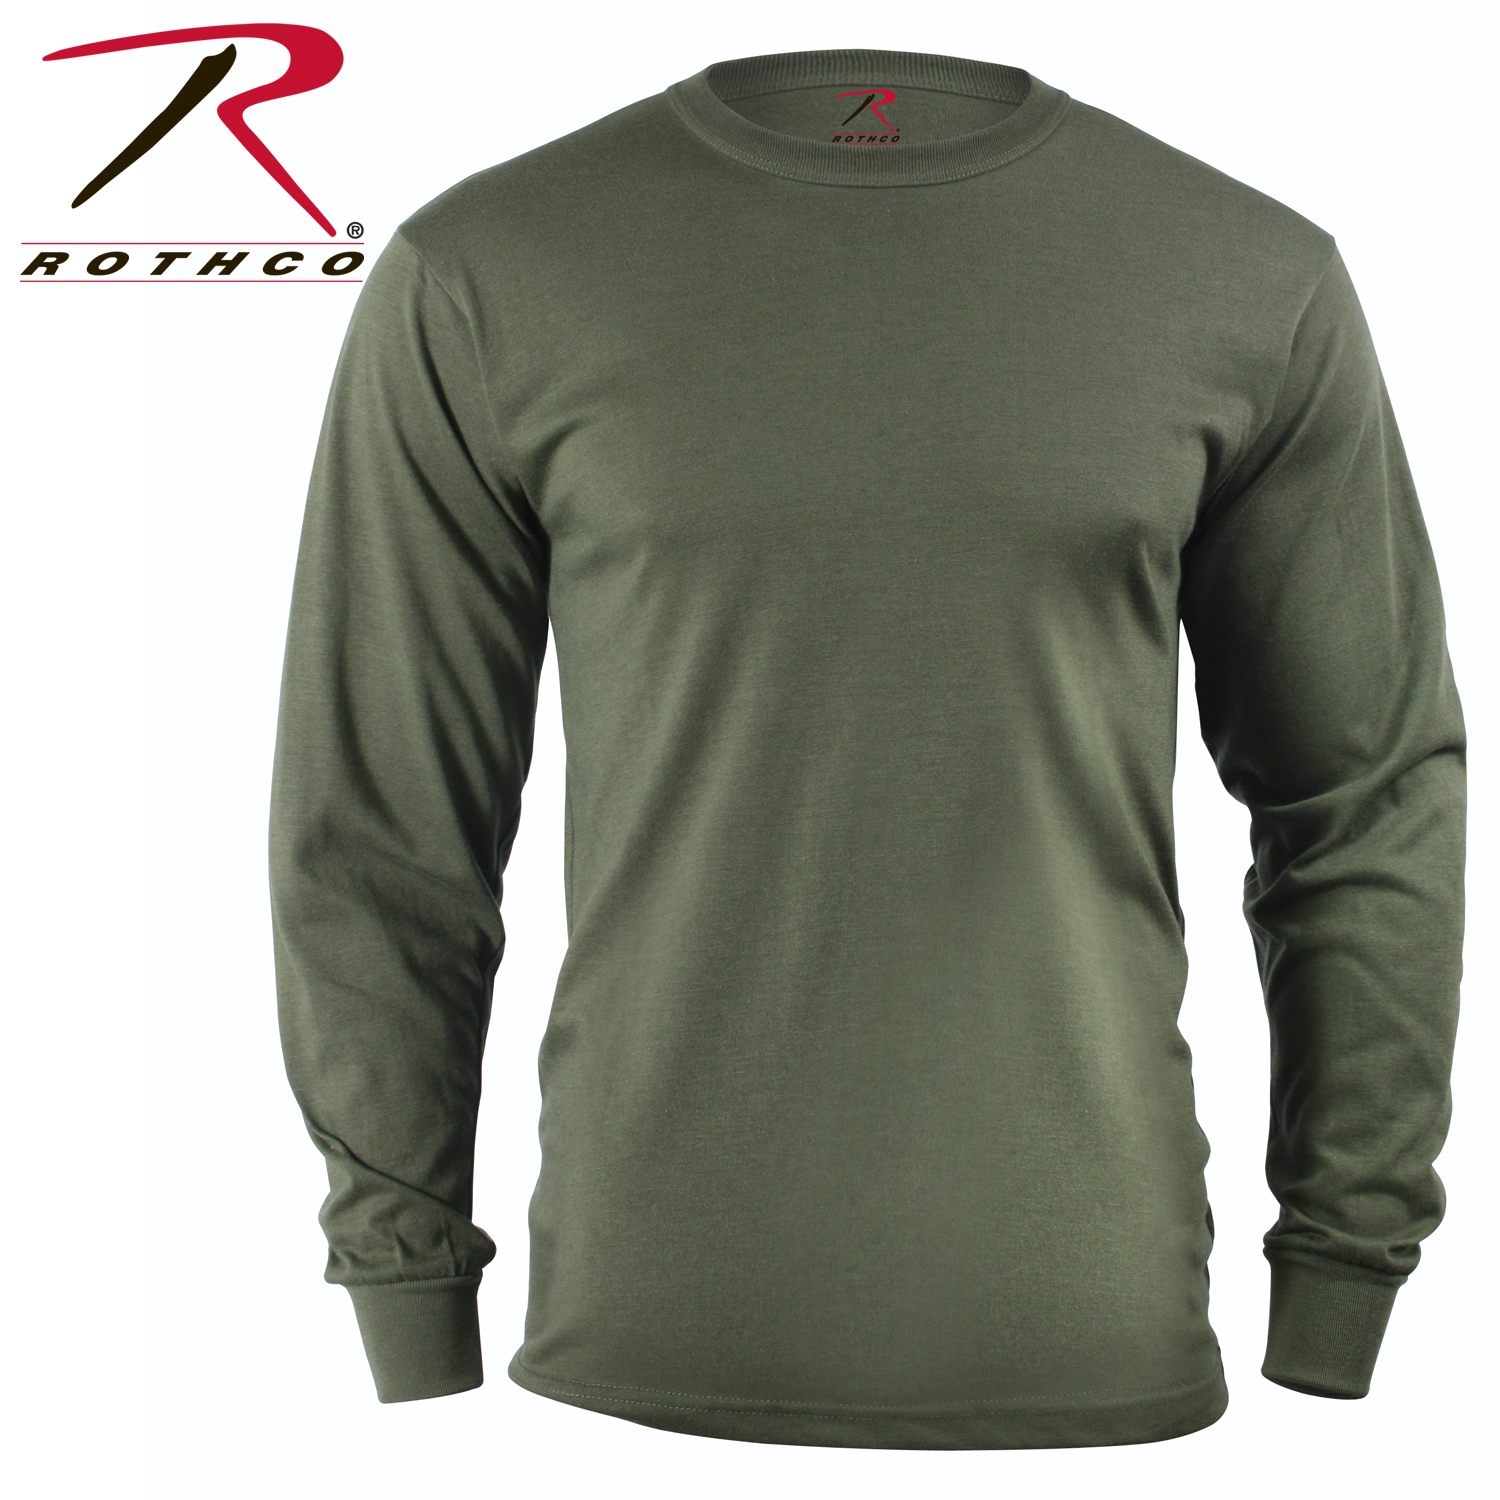 Rothco Long Sleeve Solid T-Shirt